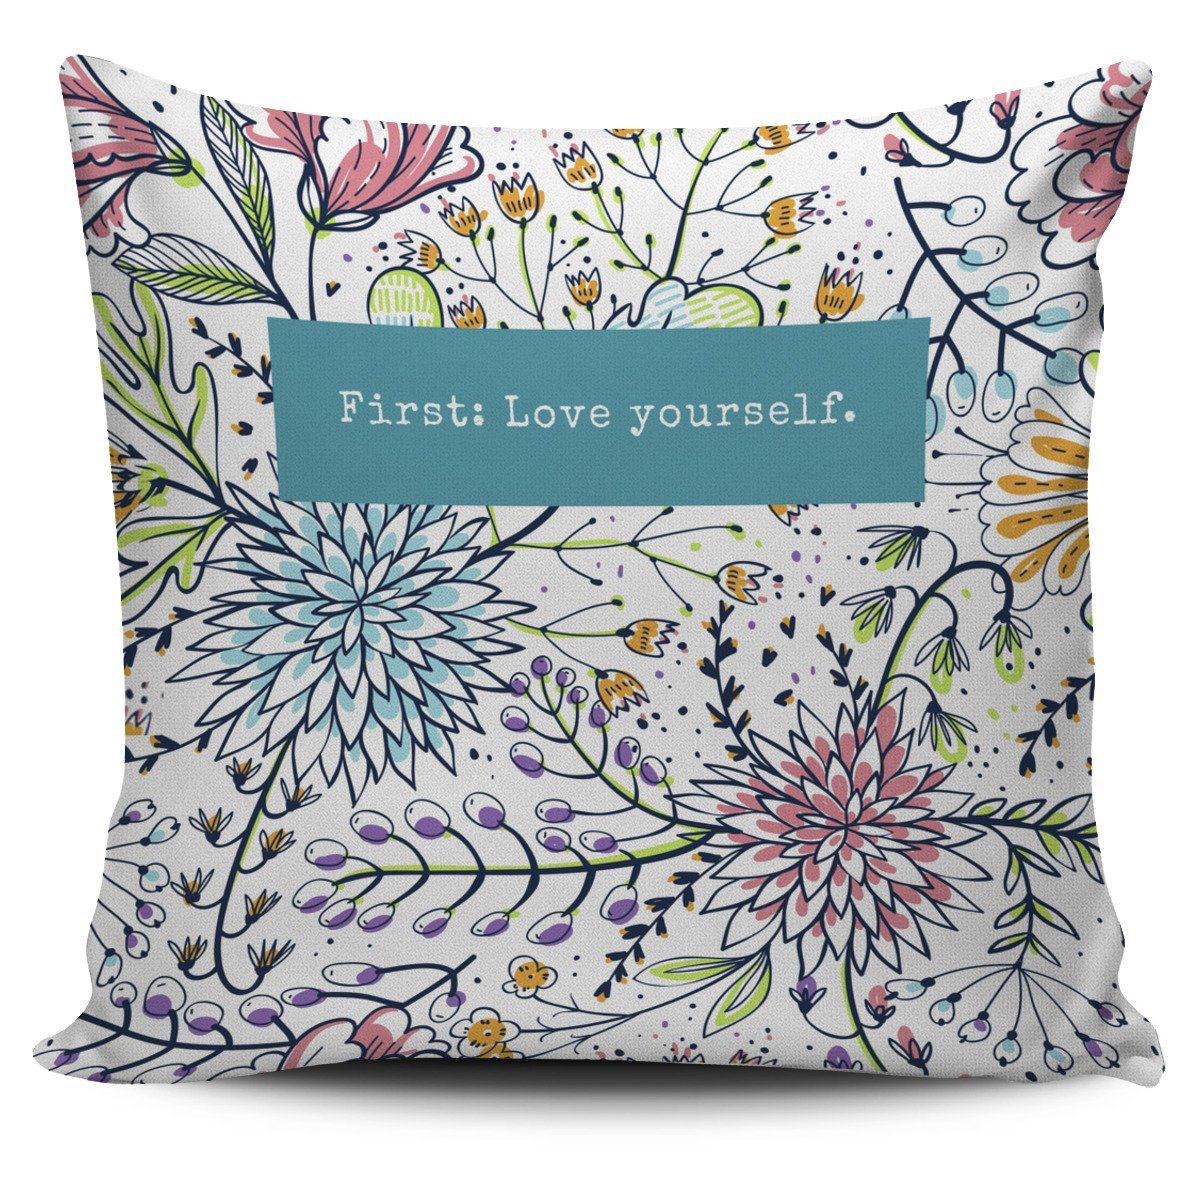 """First: love yourself."" Pillow Cover"